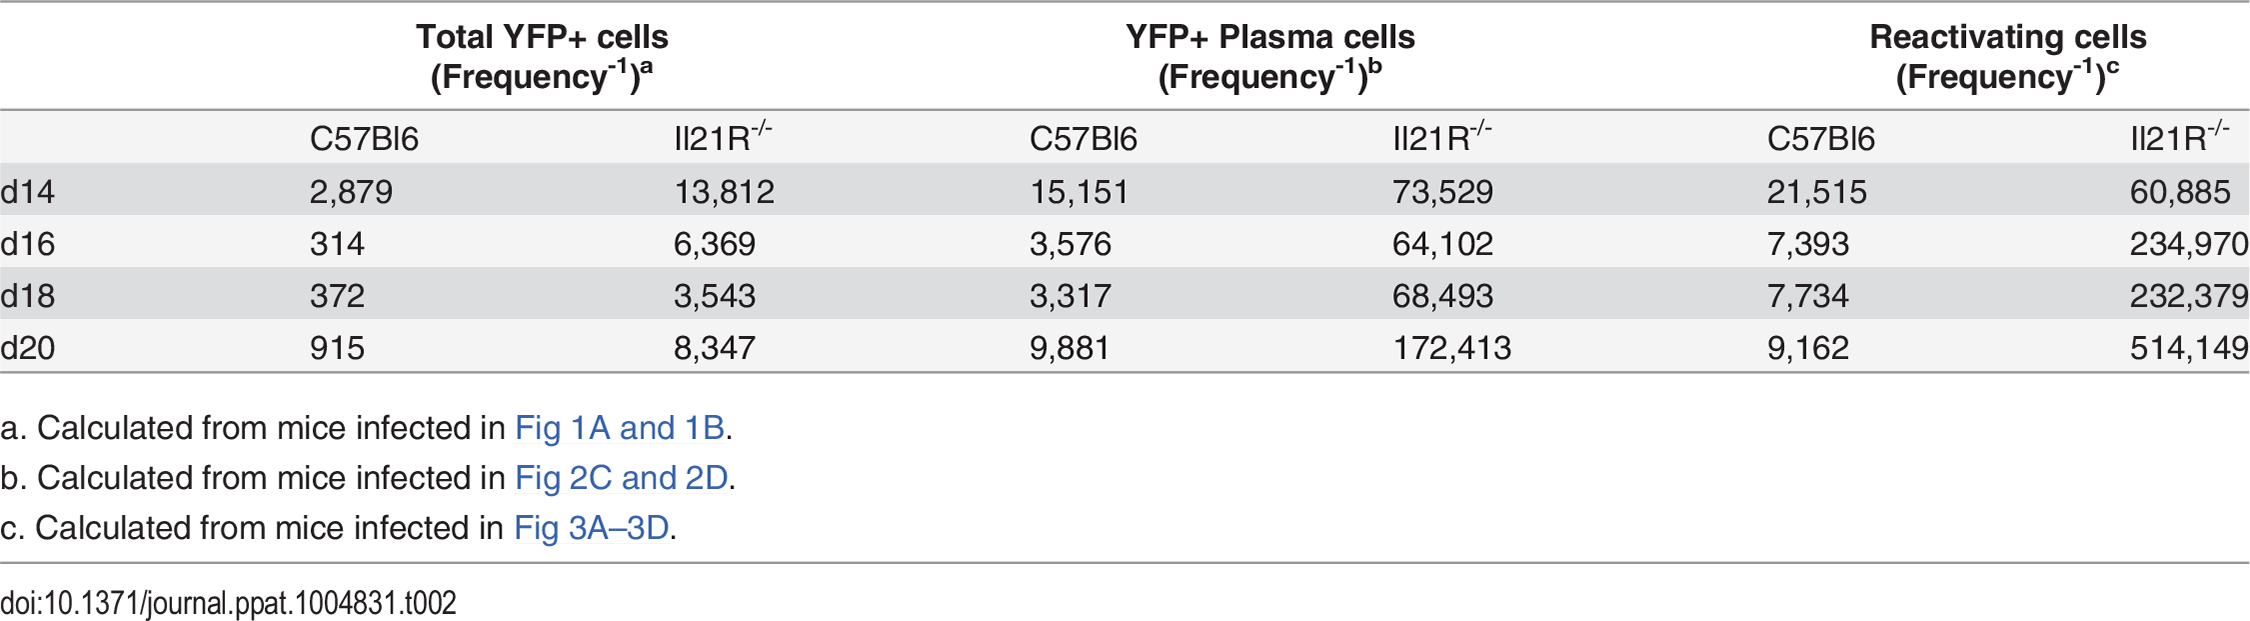 Correlation between infected plasma cells and reactivating cells.